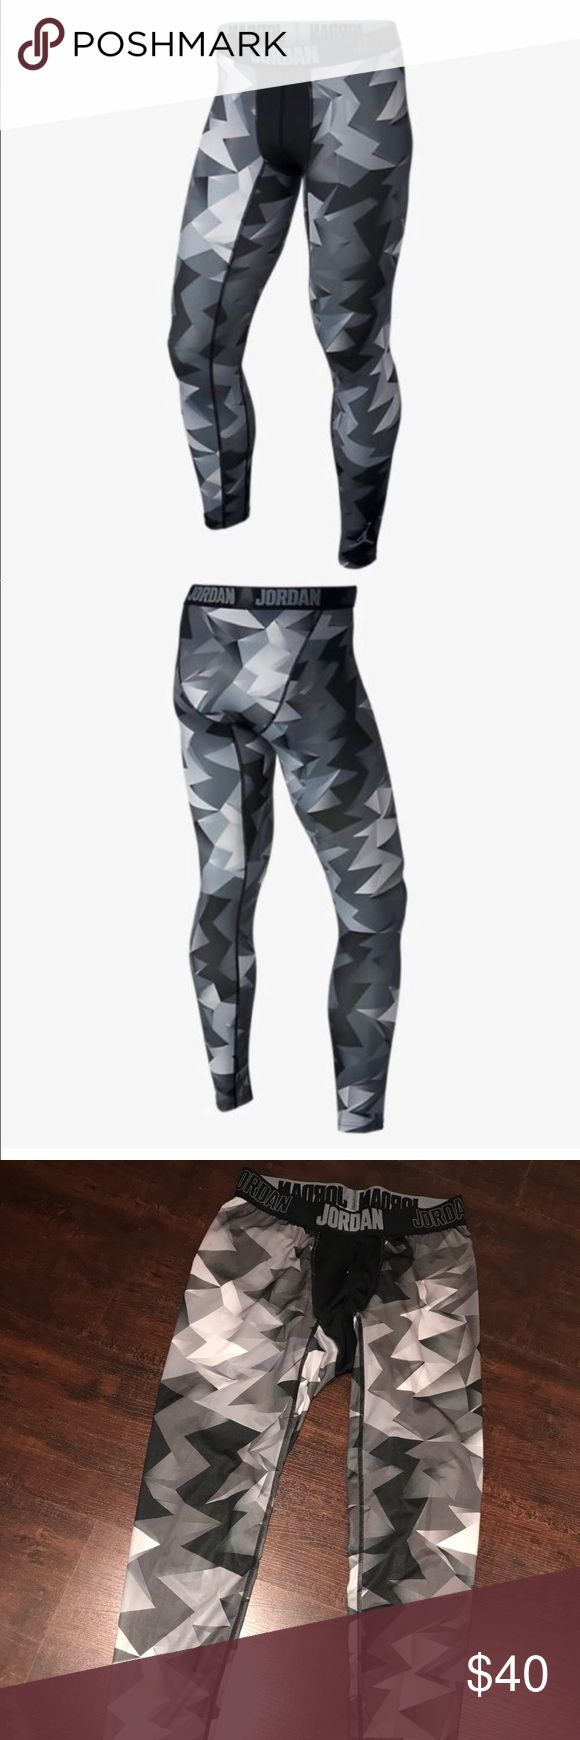 NIKE (men's) all season compression pant NIKE🔹men's large🔹silver/Grey/Black/White with thick NIKE waistband 🔹all season 🔹BNWOT🔹purchased for my BF, he never wore them , he likes a simple subtle color 😝 I like them...with black shorts over them...HOT HOT HOT!🤑🤑 Nike Pants Sweatpants & Joggers